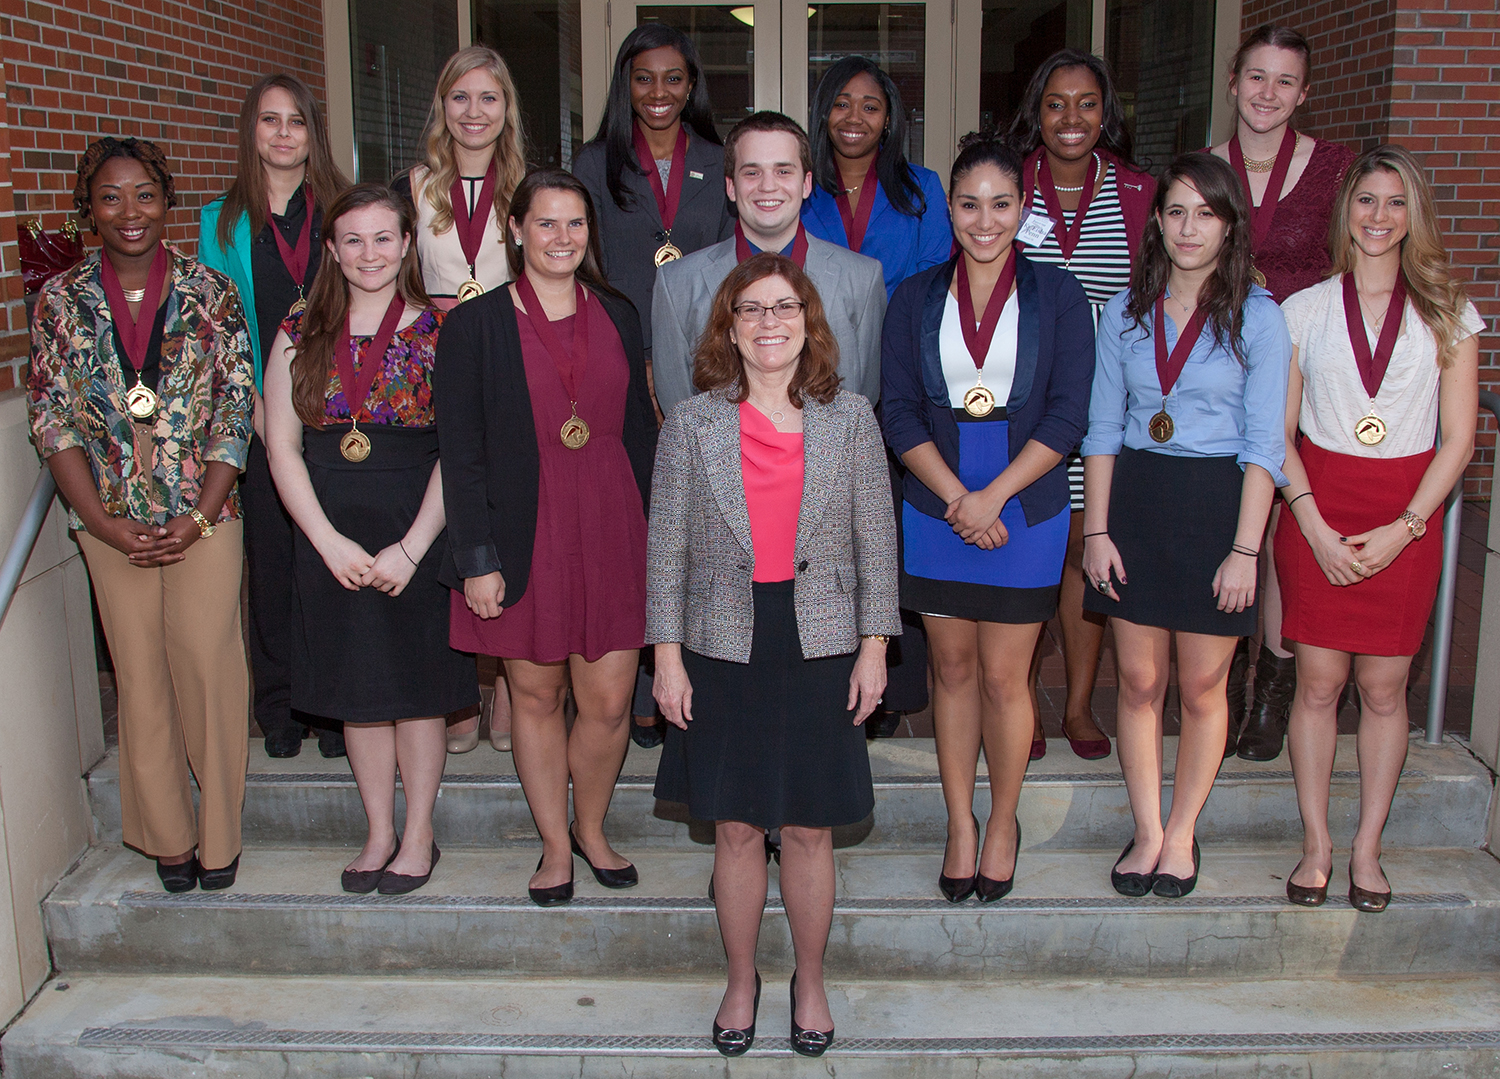 FSU's Executive Vice President for Academic Affairs Garnett S. Stokes stands front and center with the new members of the Garnet and Gold Scholar Society.